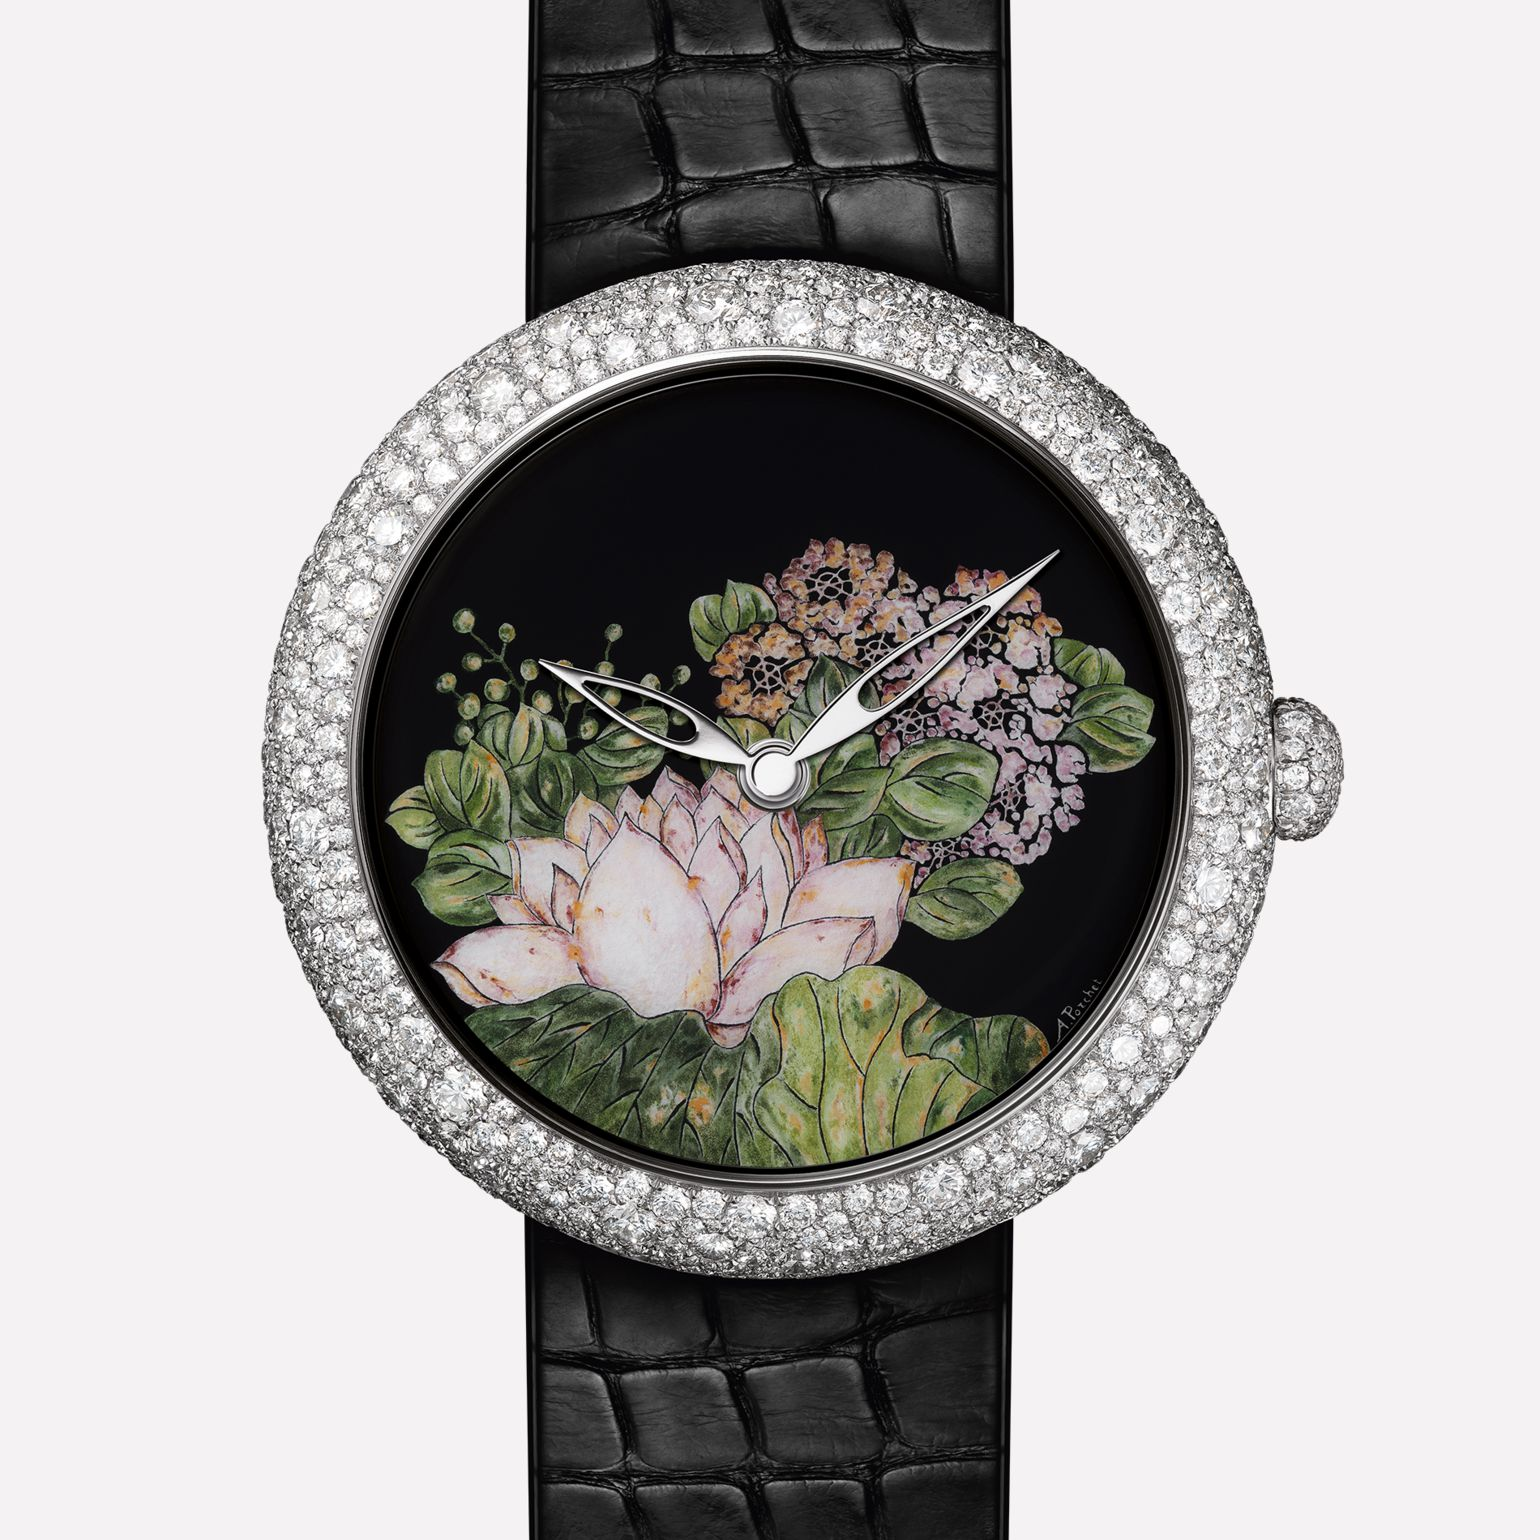 Mademoiselle Privé Watch Coromandel created using the Grand Feu enamel miniature technique